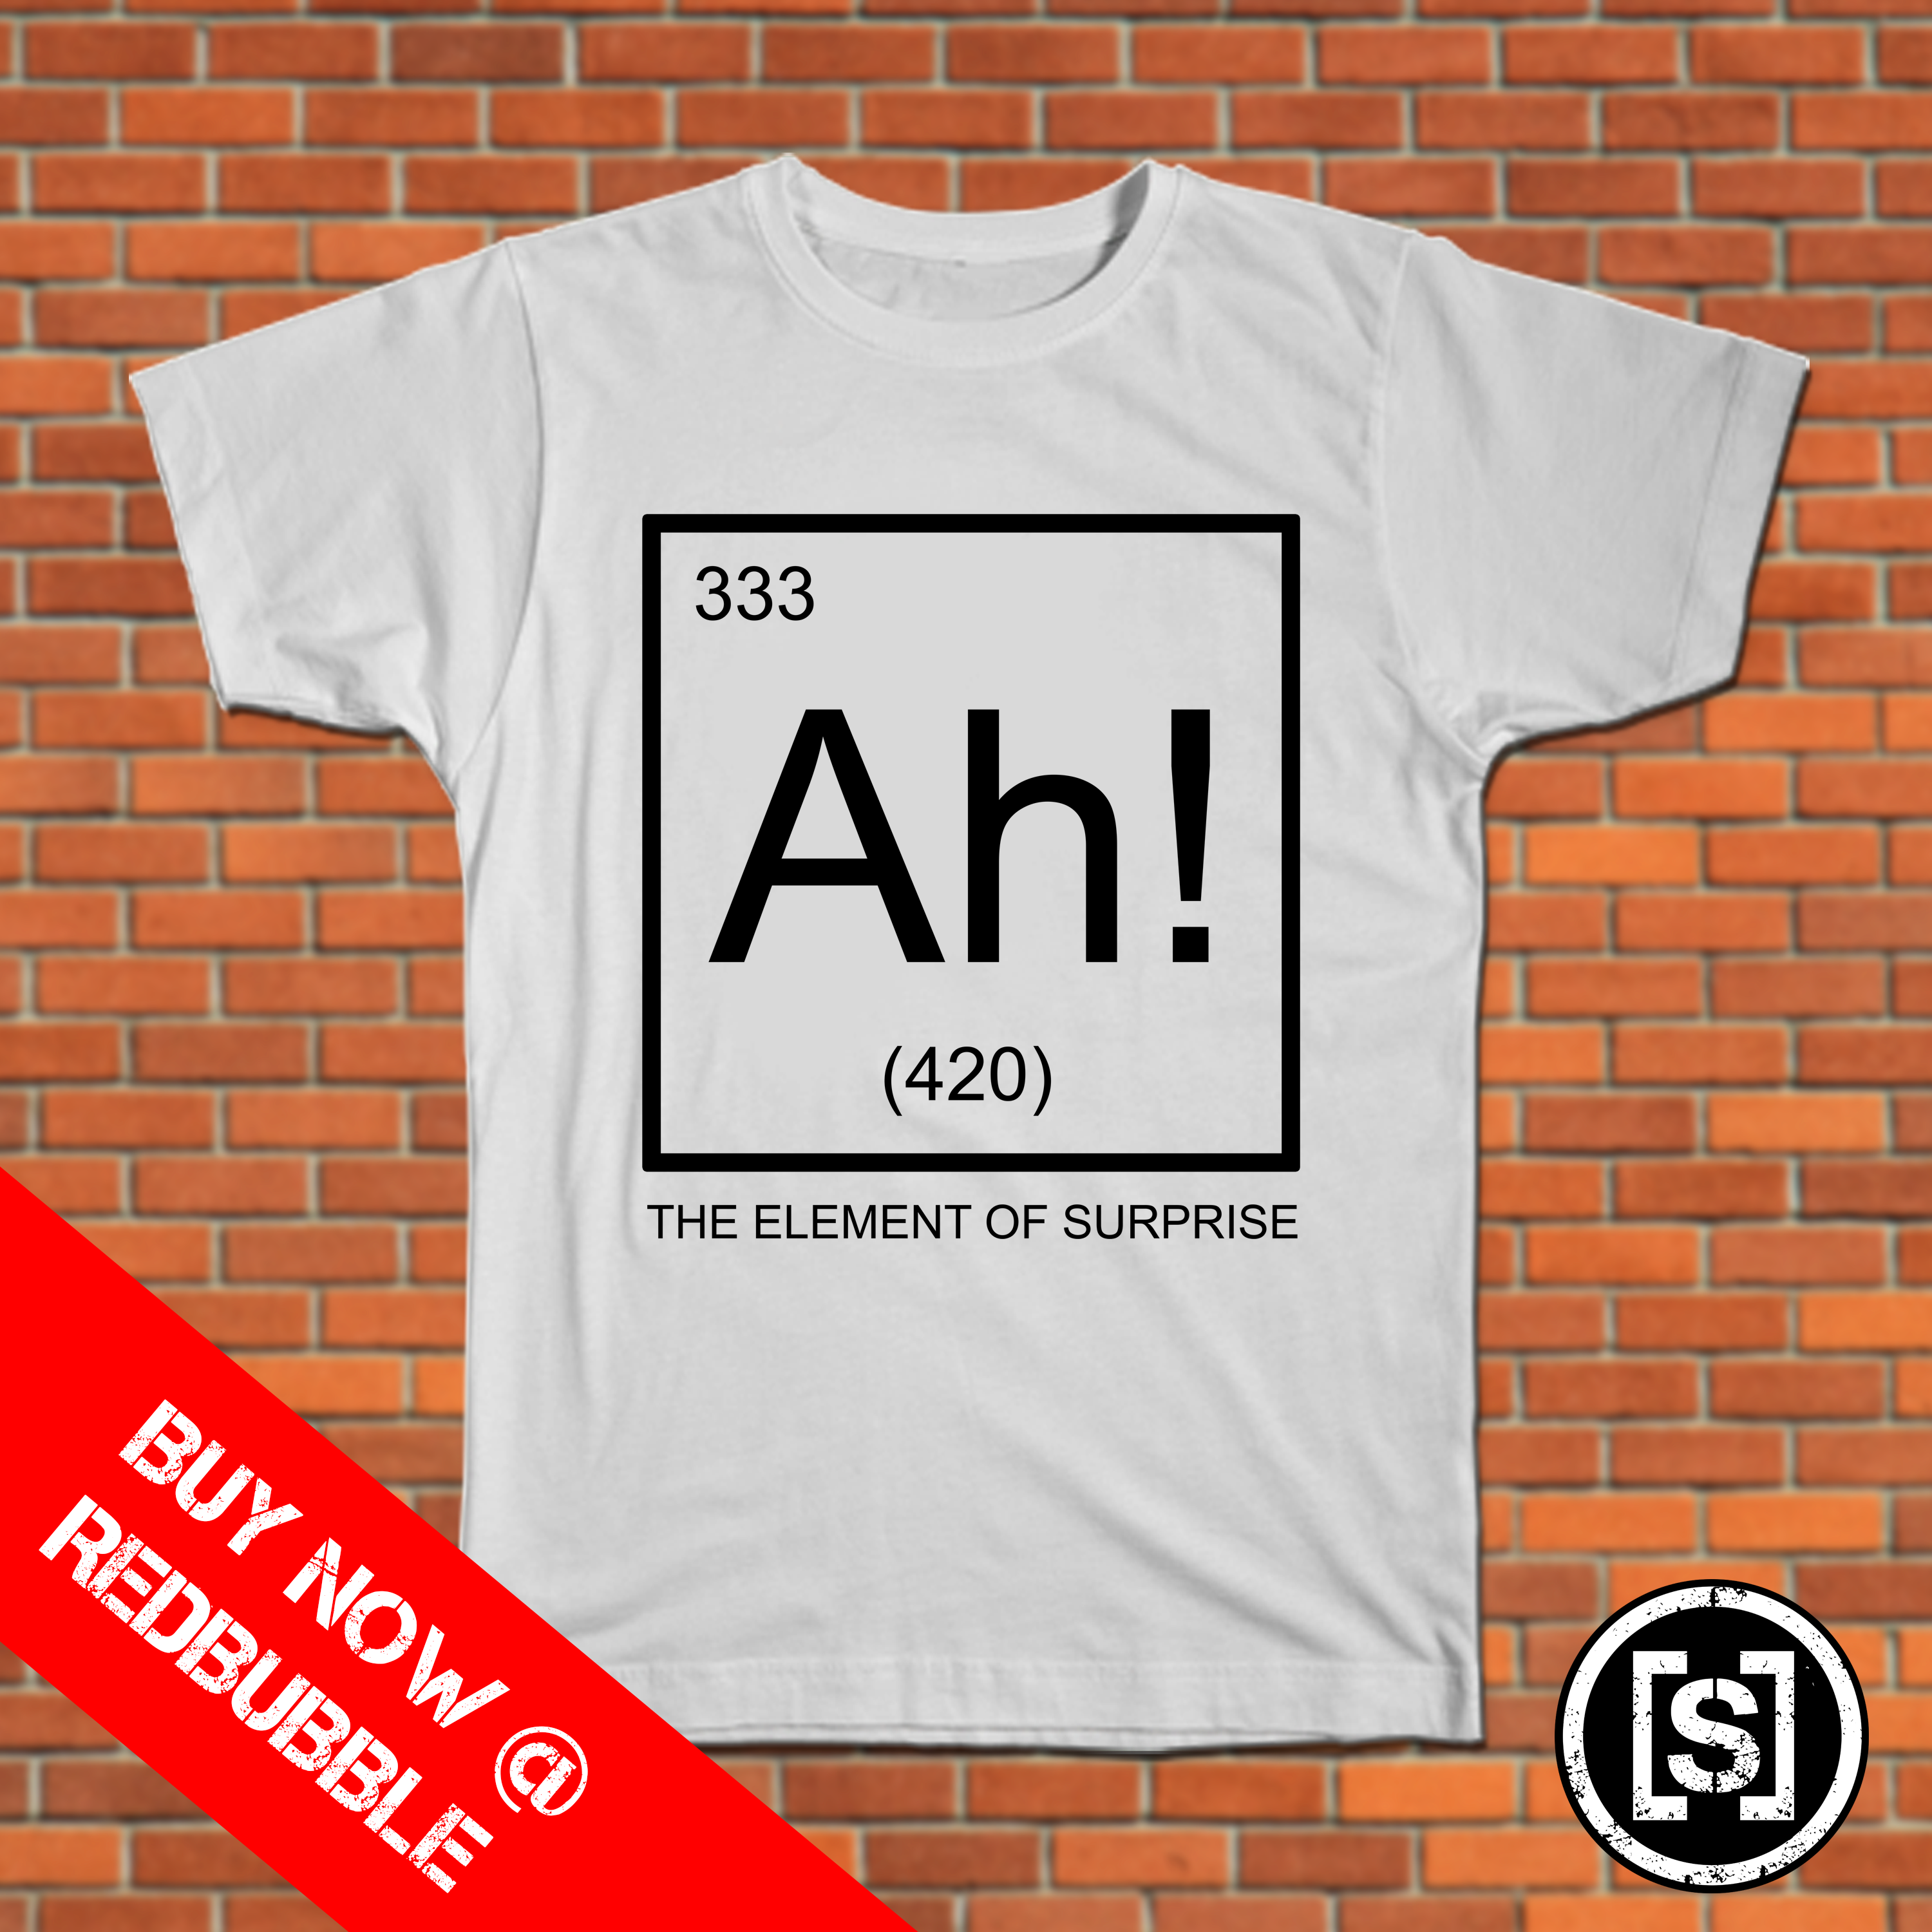 612ac7a5b Cool funny chemistry humor wordplay t shirt design, check out other  available products!